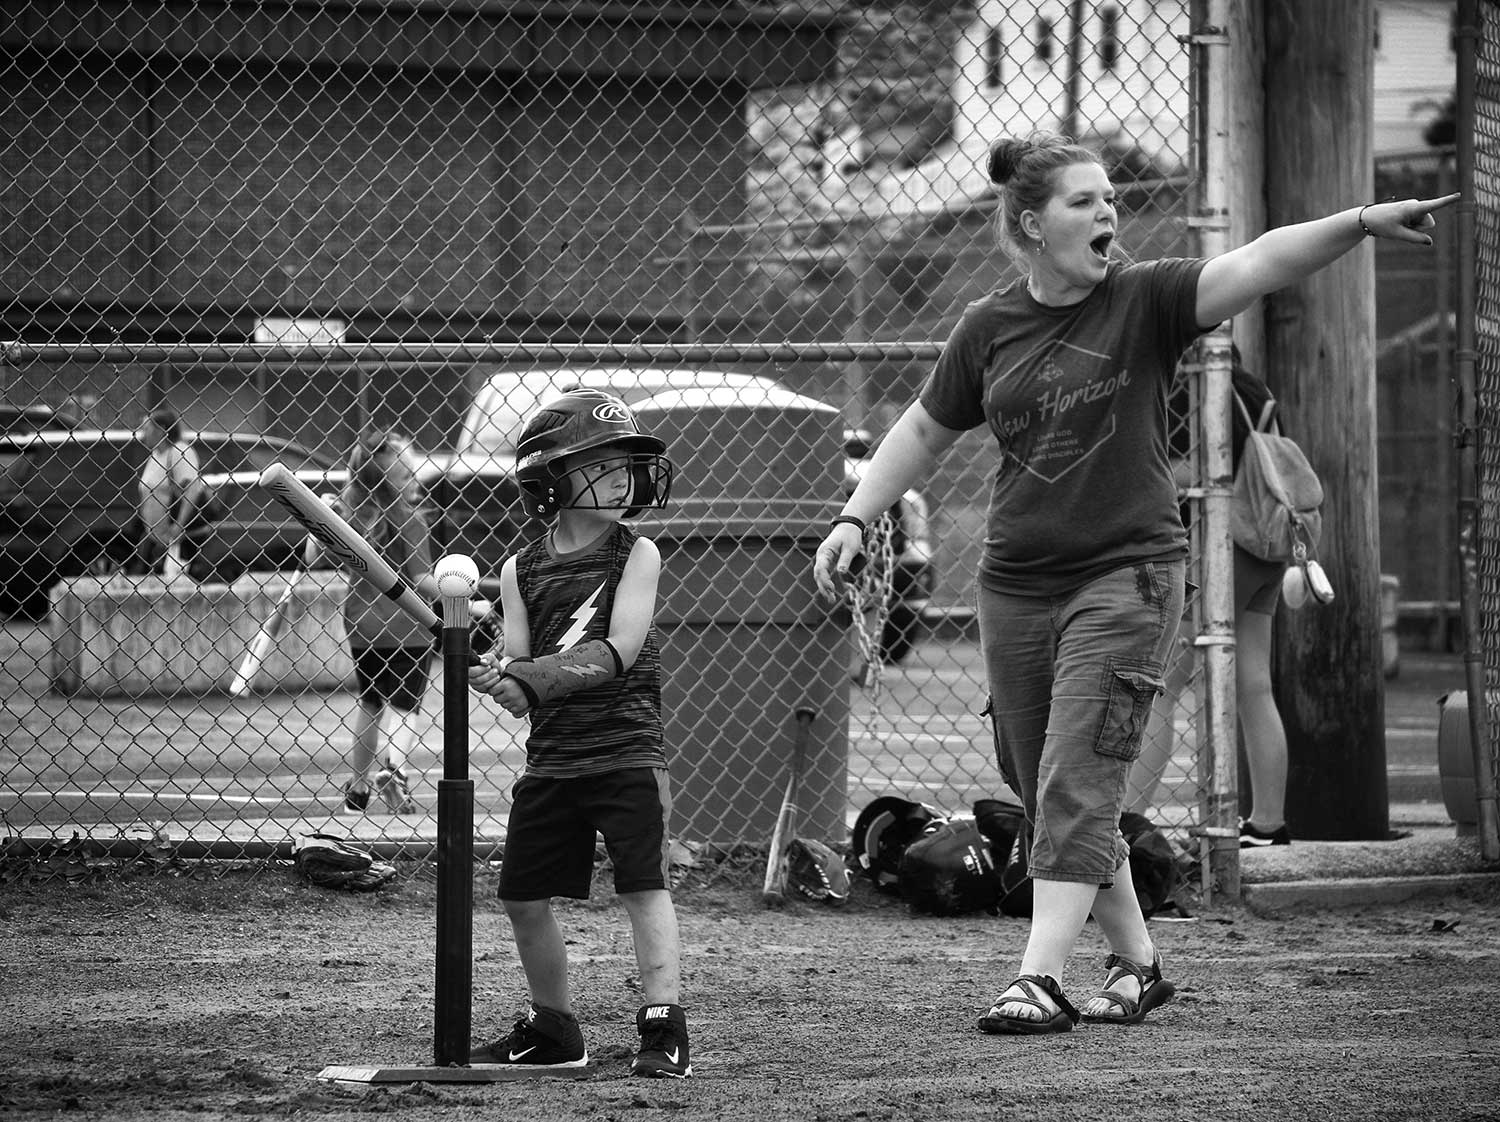 """Wildcats coach Tabby Ivey instructs the infield to be """"baseball ready"""" for Nathan Jones' big swing. """"This is only our second practice so we're trying to learn the names too,"""" said Tabby's husband Craig. photo by Seth Raborn - 2019"""